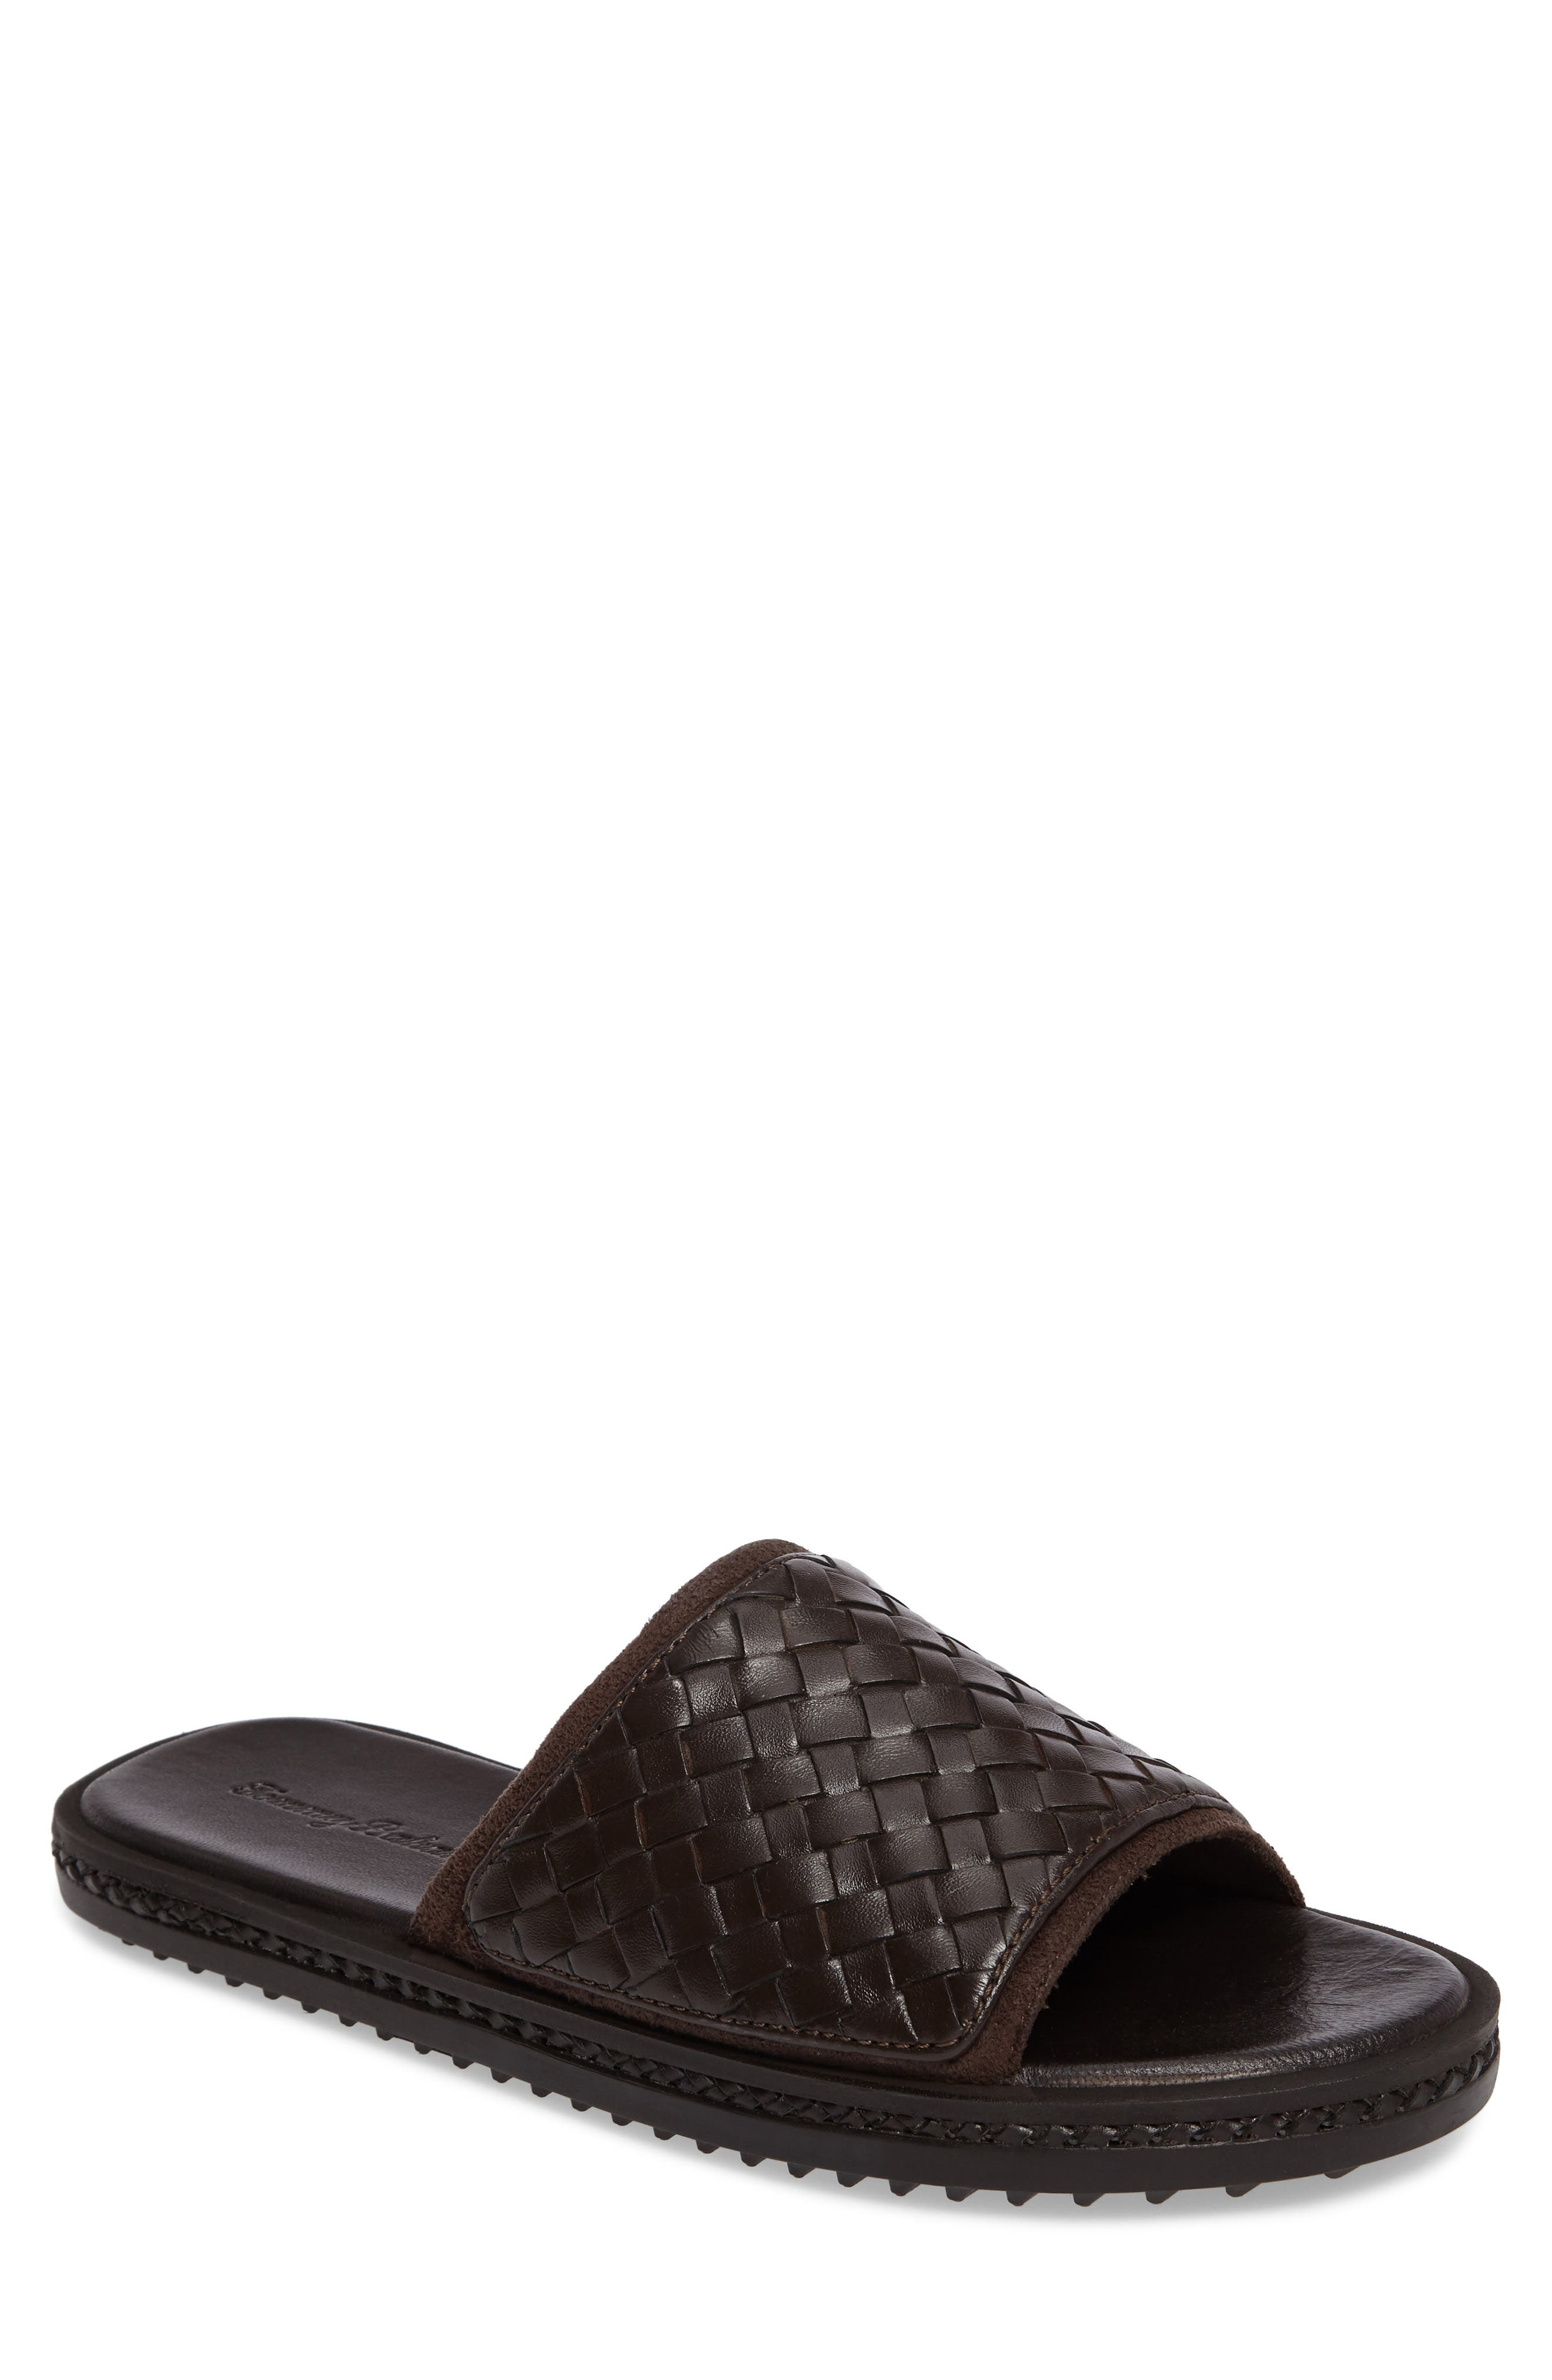 Shore Crest Woven Slide Sandal,                             Main thumbnail 1, color,                             Dark Brown